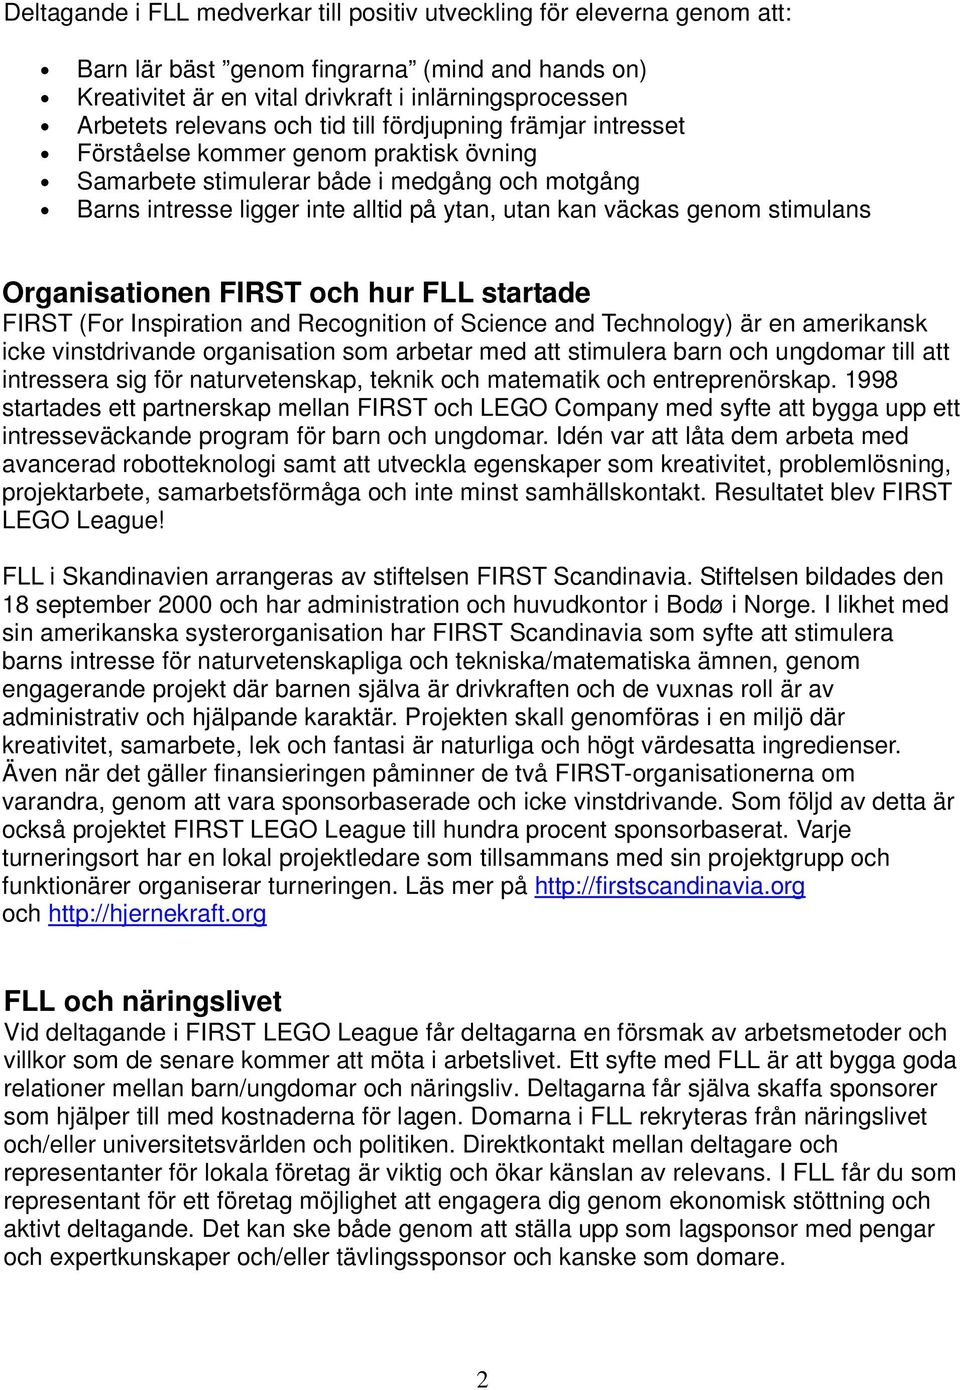 stimulans Organisationen FIRST och hur FLL startade FIRST (For Inspiration and Recognition of Science and Technology) är en amerikansk icke vinstdrivande organisation som arbetar med att stimulera